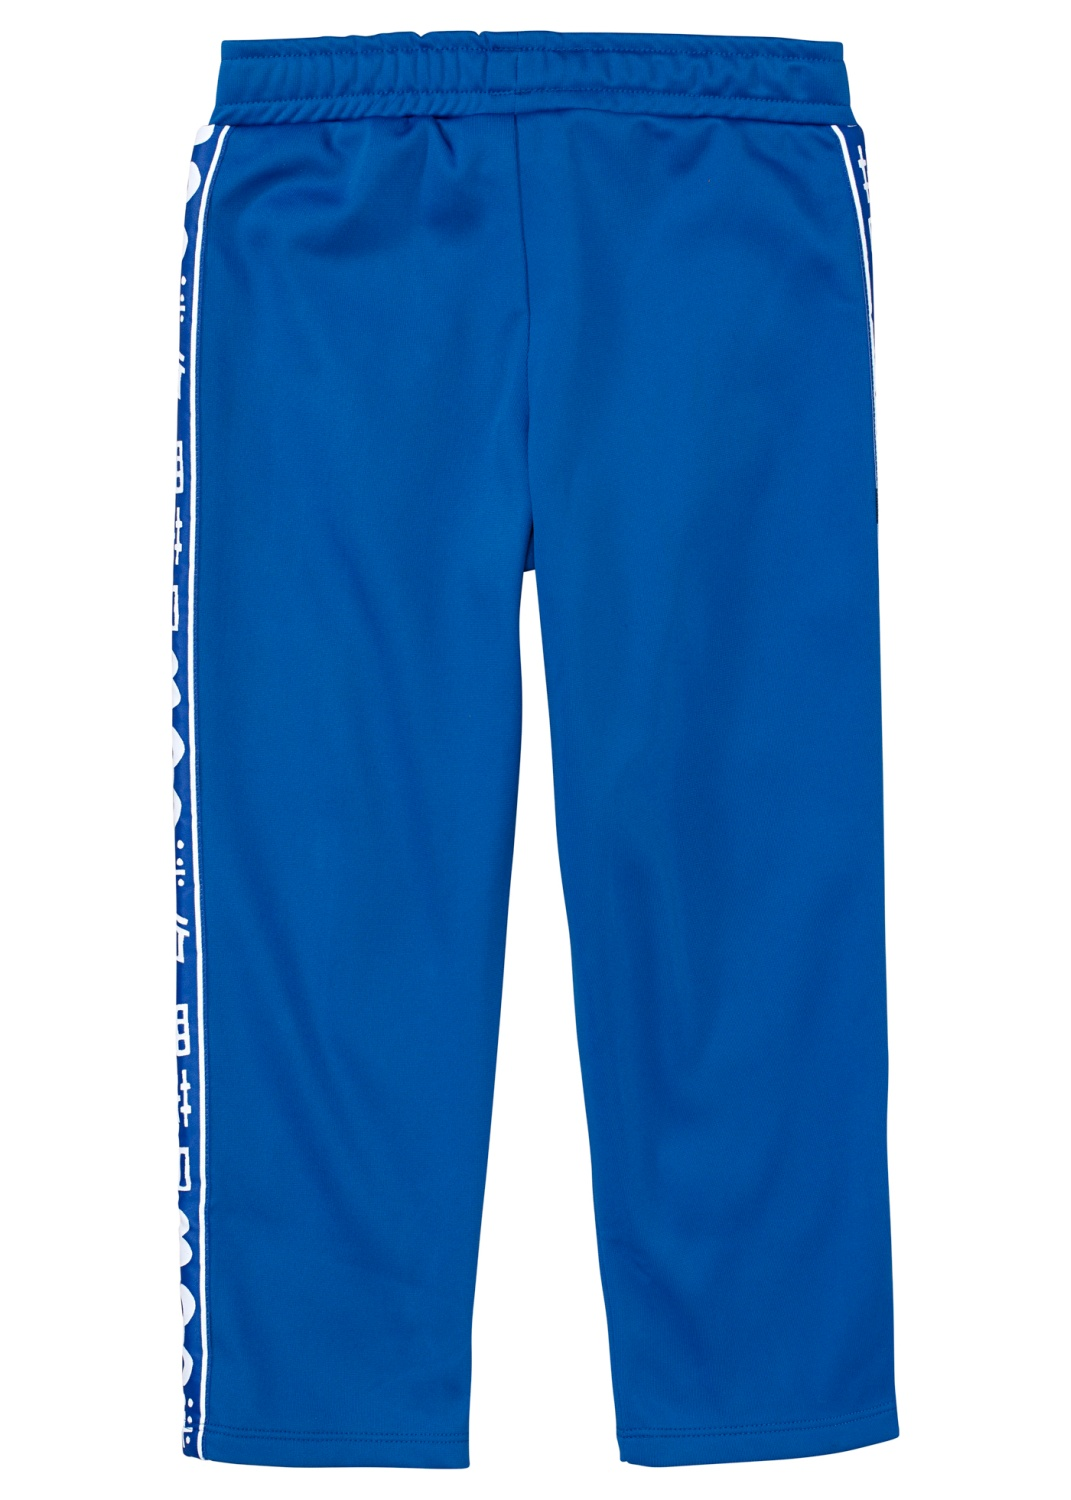 Rabbit wct trousers -X- image number 1